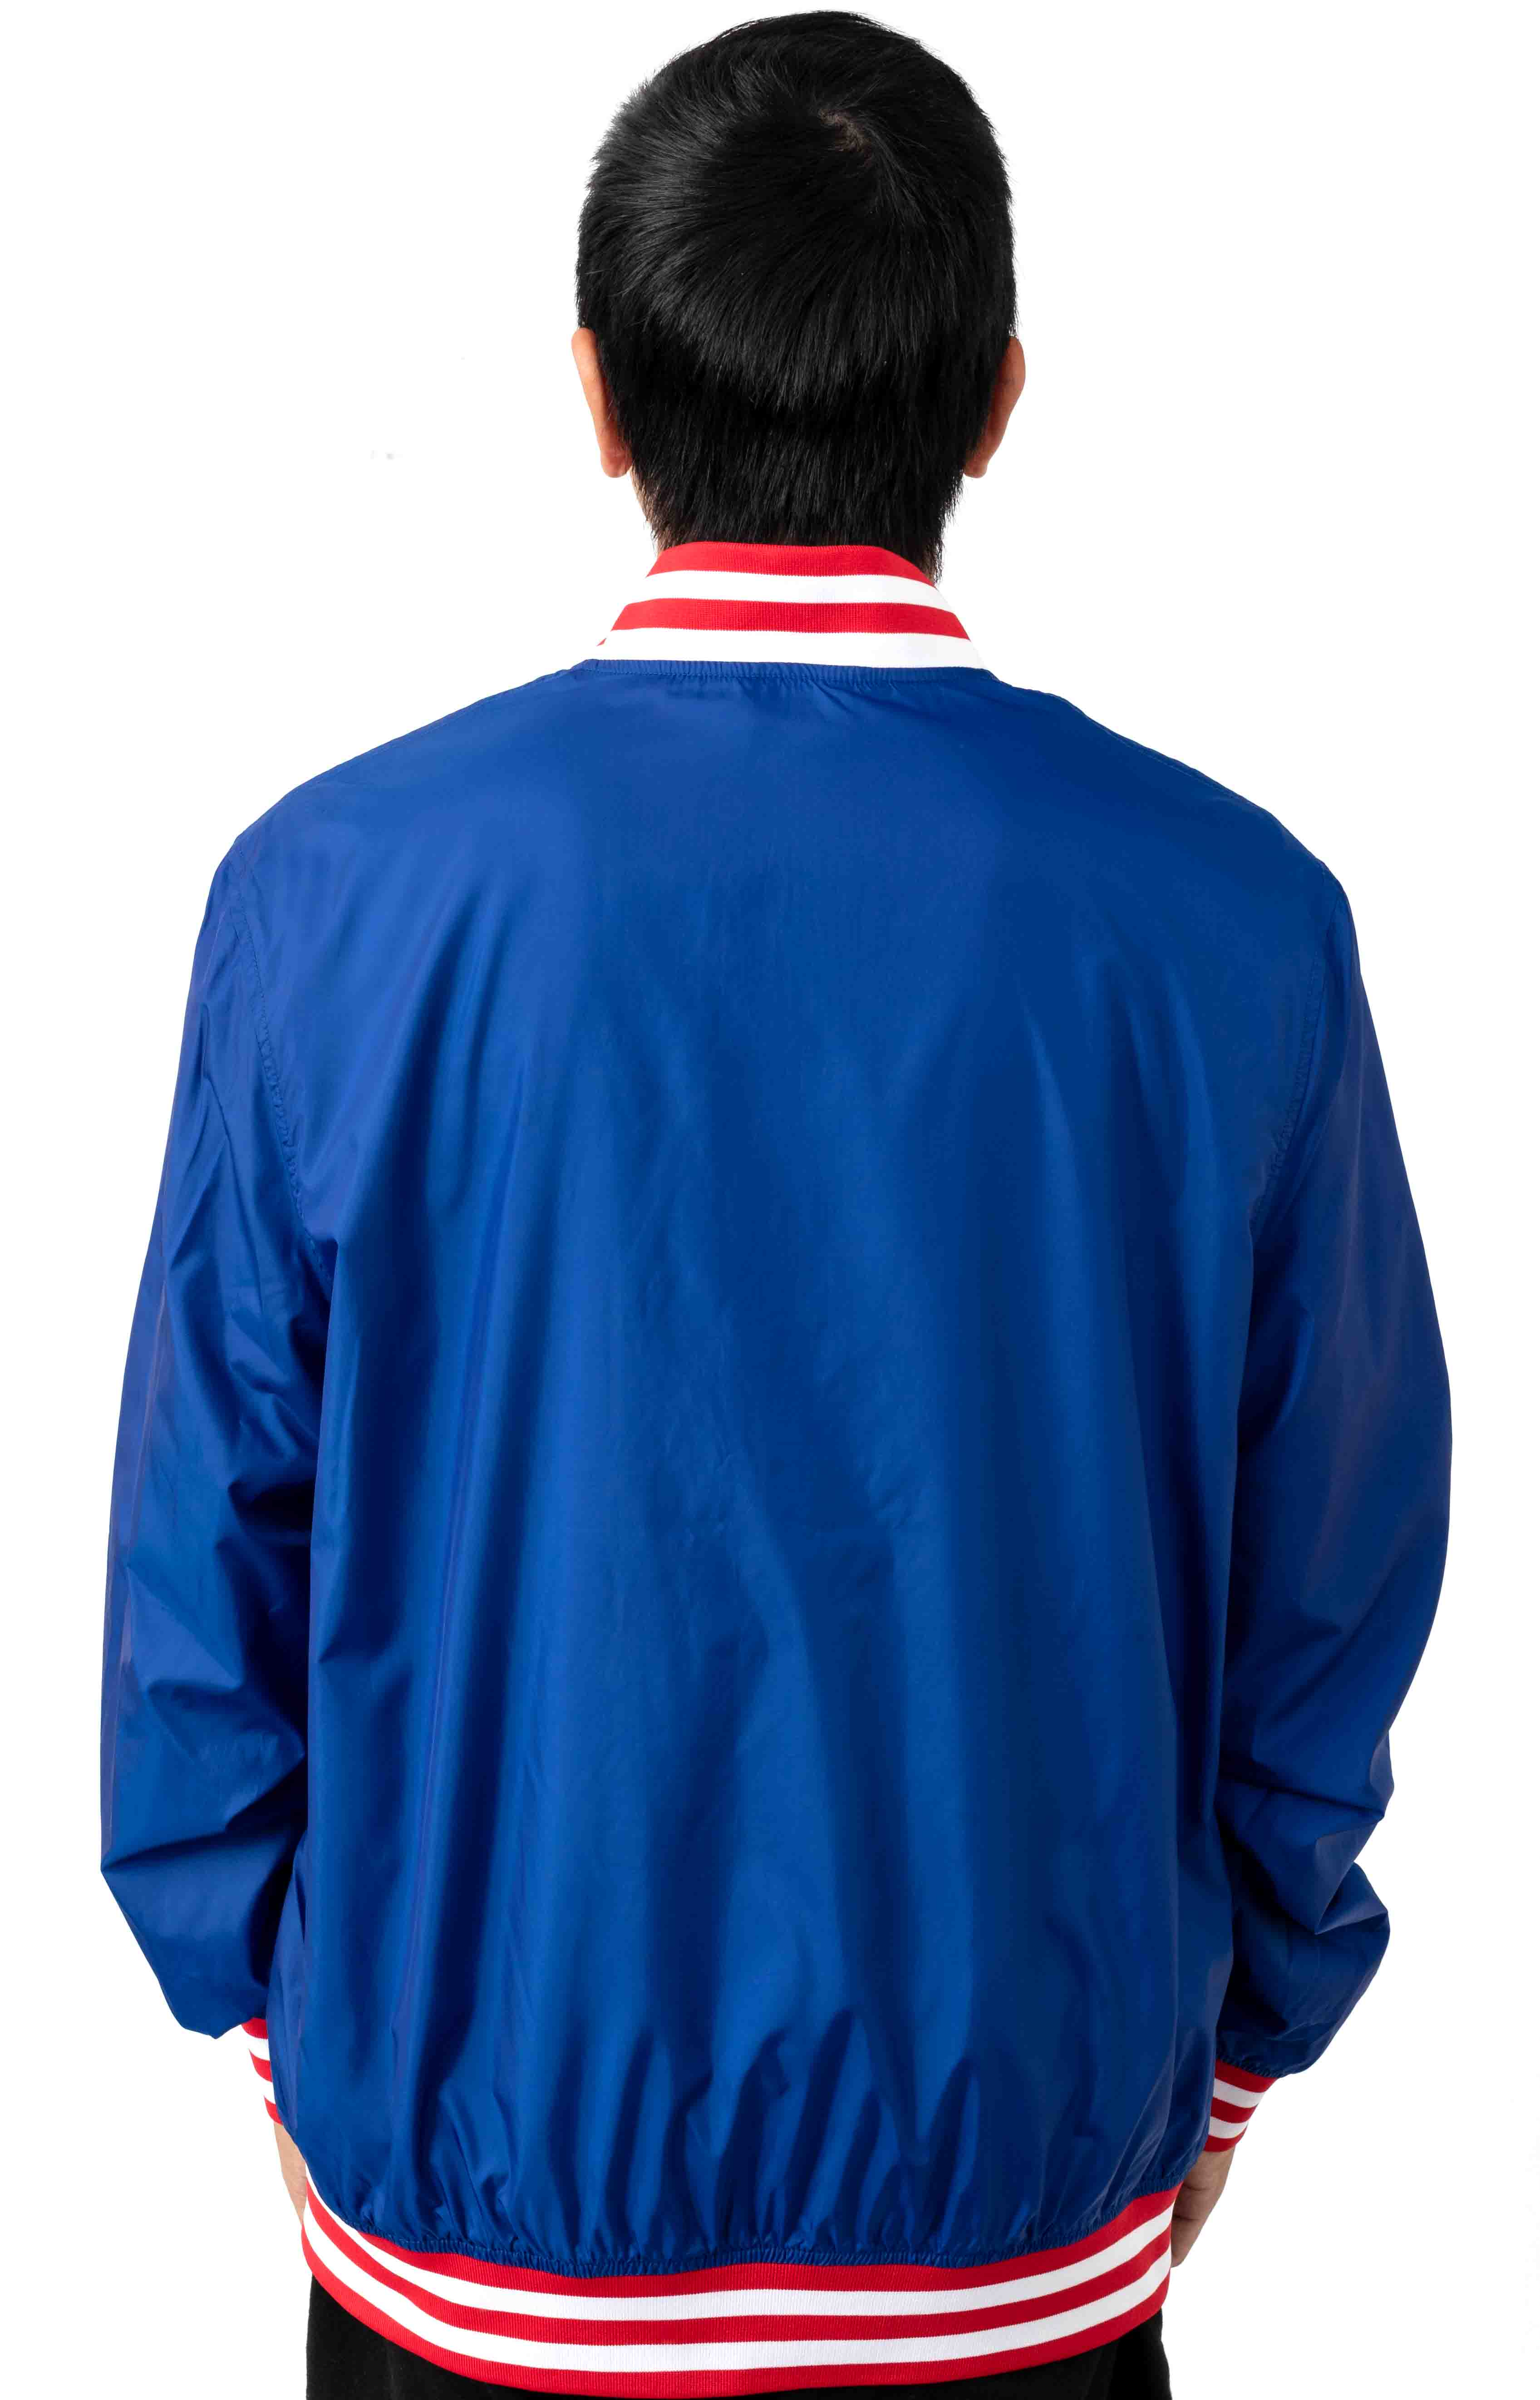 Satin Champion Embroidered Script Baseball Jacket - Surf The Web/Scarlet 3